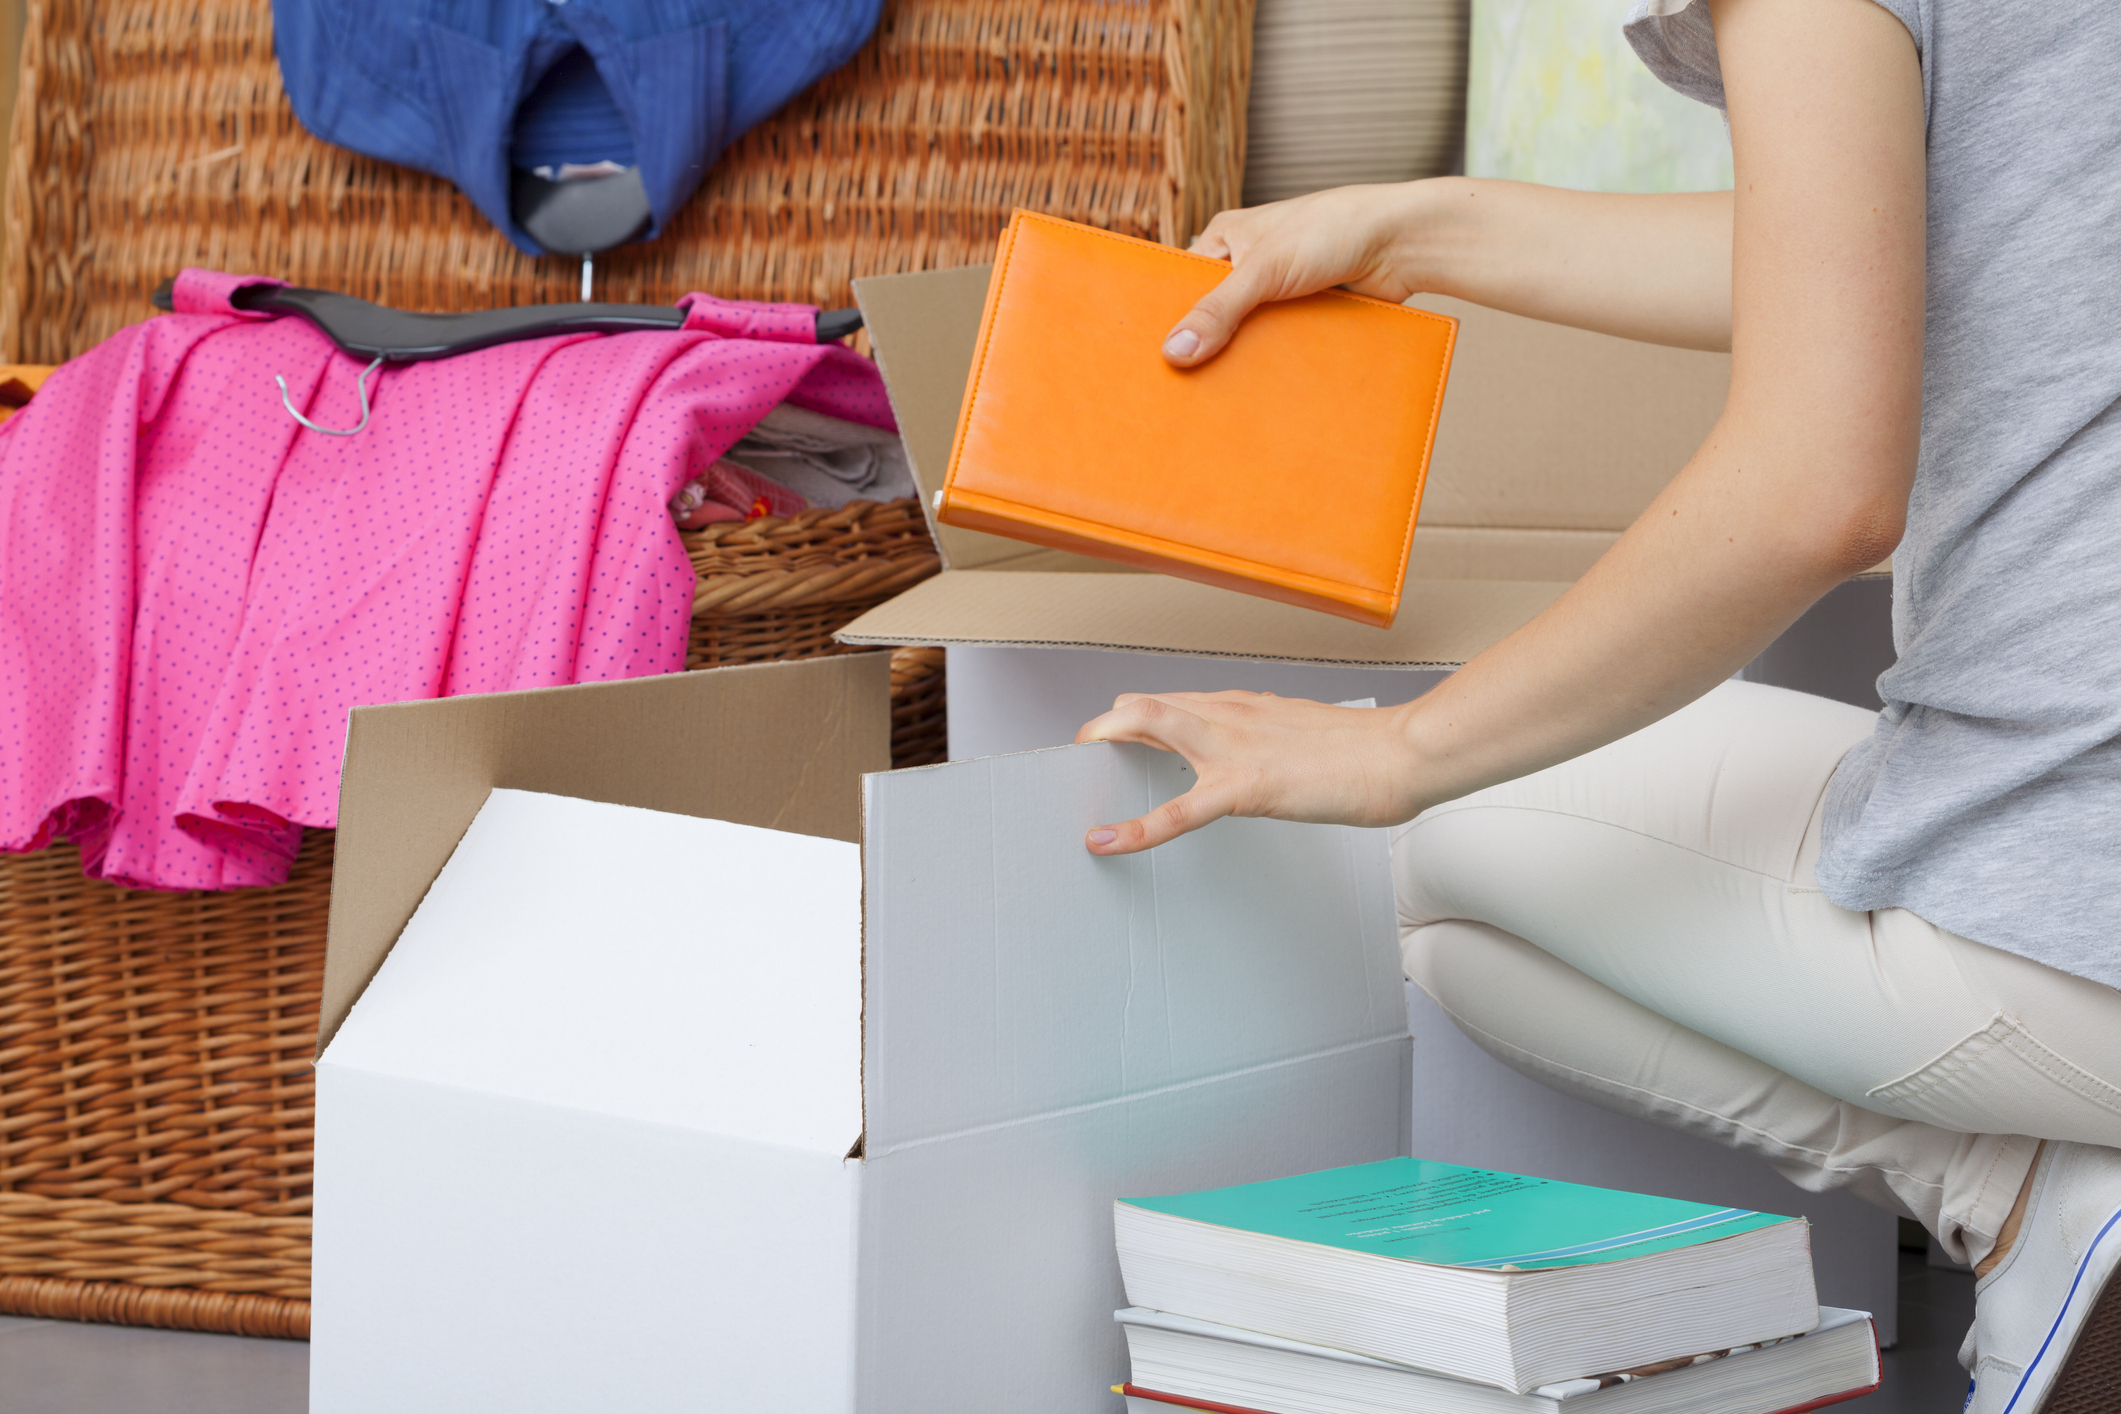 You Don't Have to Downsize to DeclutterYou Don't Have to Downsize to Declutter